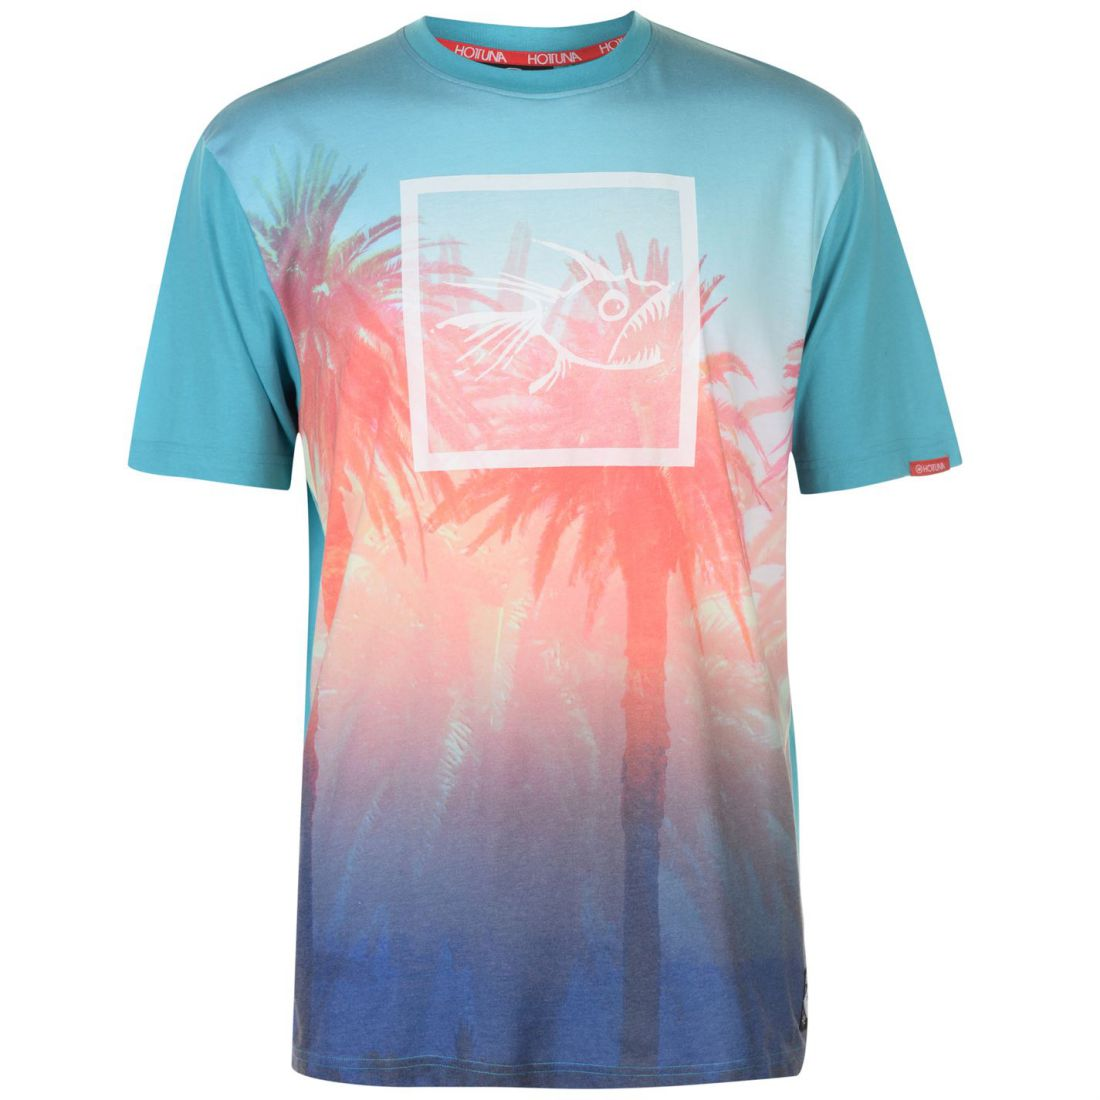 1cc659ea Hot Tuna Mens Sublimation Print T Shirt Crew Neck Tee Top Short Sleeve All  Over